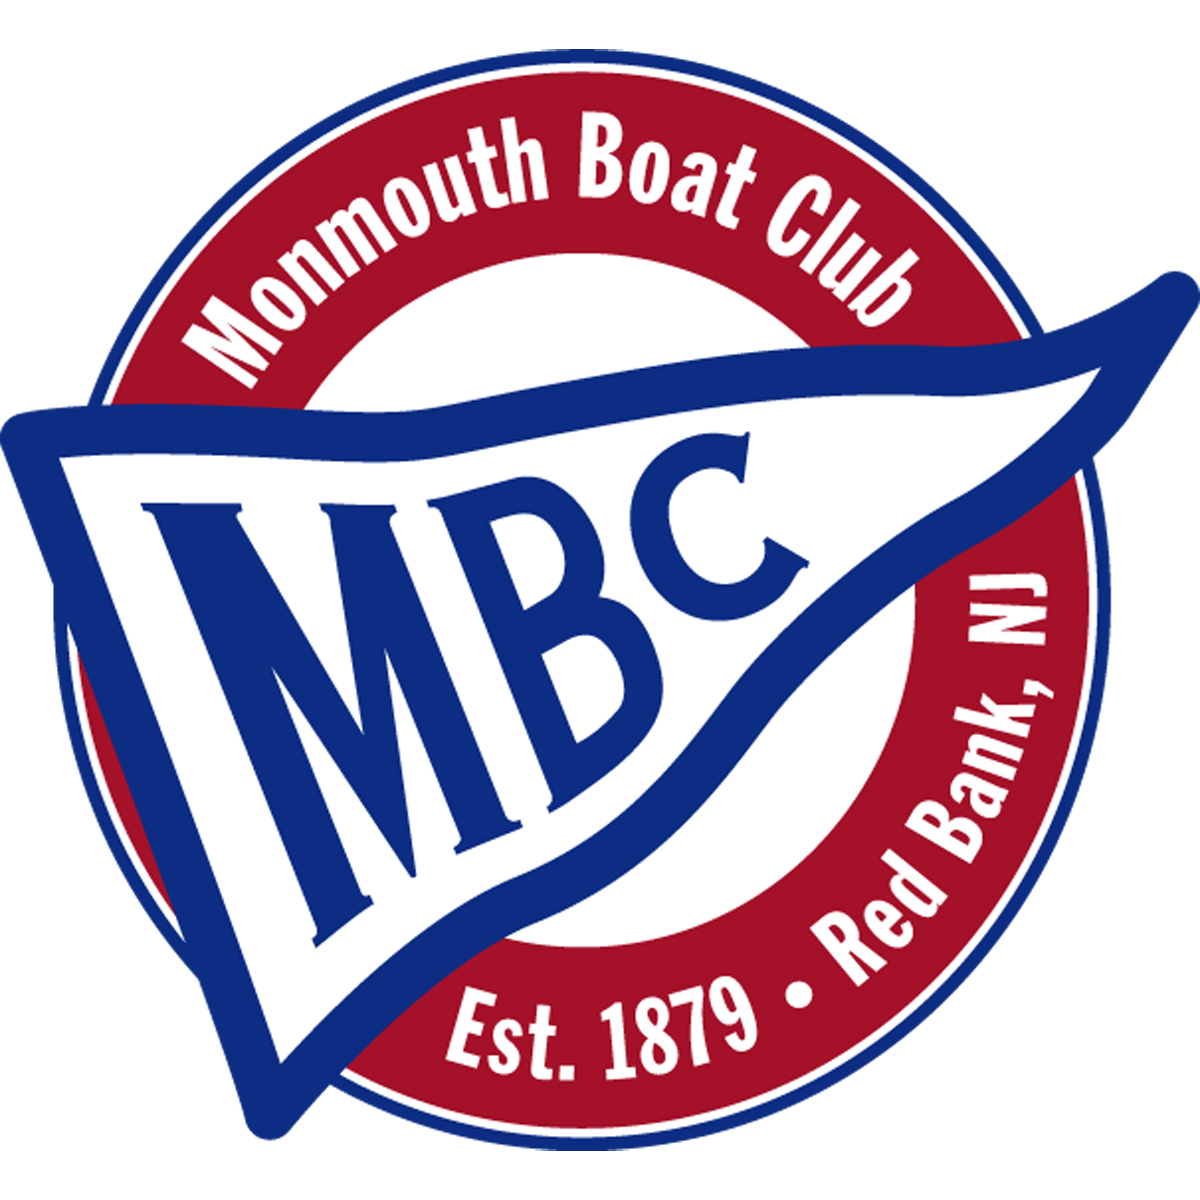 Monmouth Boat Club - Logo Added to Other Products